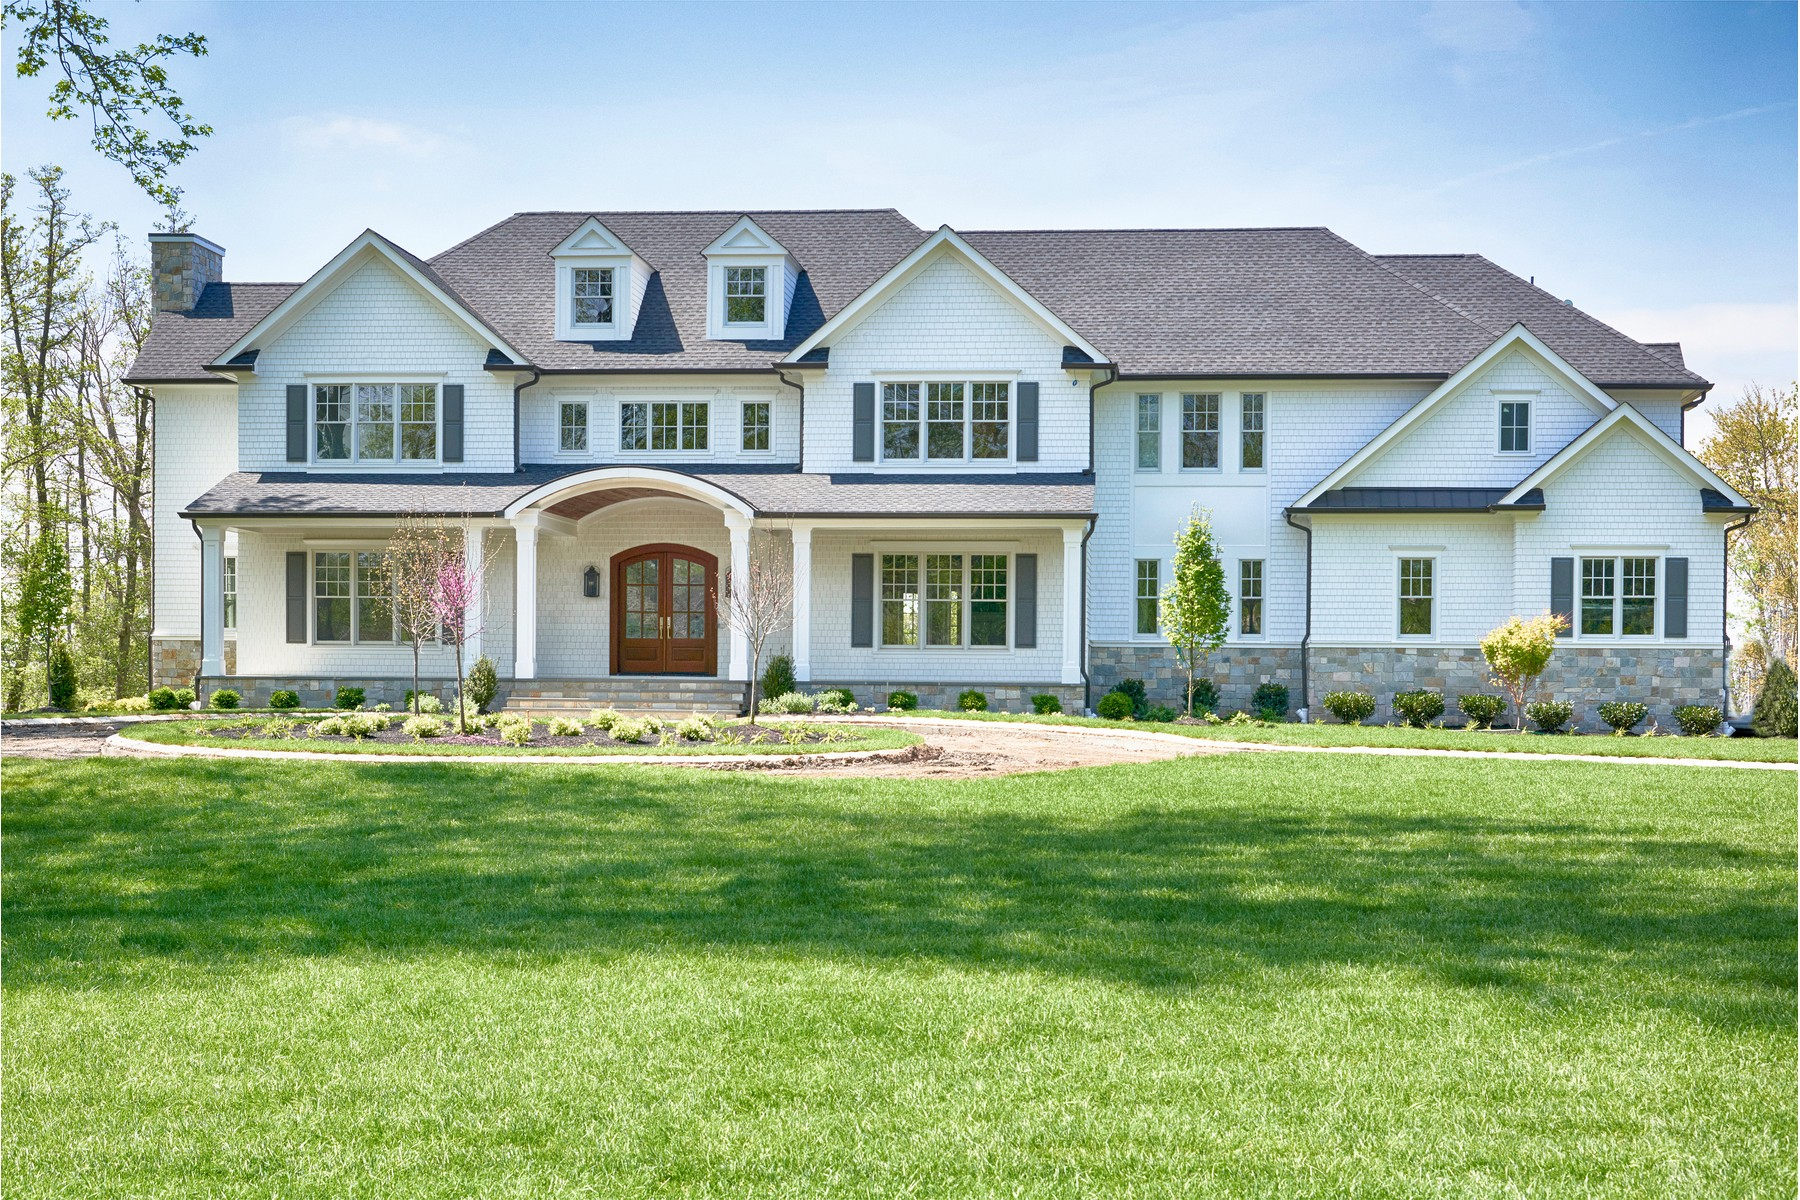 Single Family Home for Sale at THE ULTIMATE IN NEW! 22 Conover Ln, Rumson, New Jersey 07760 United States